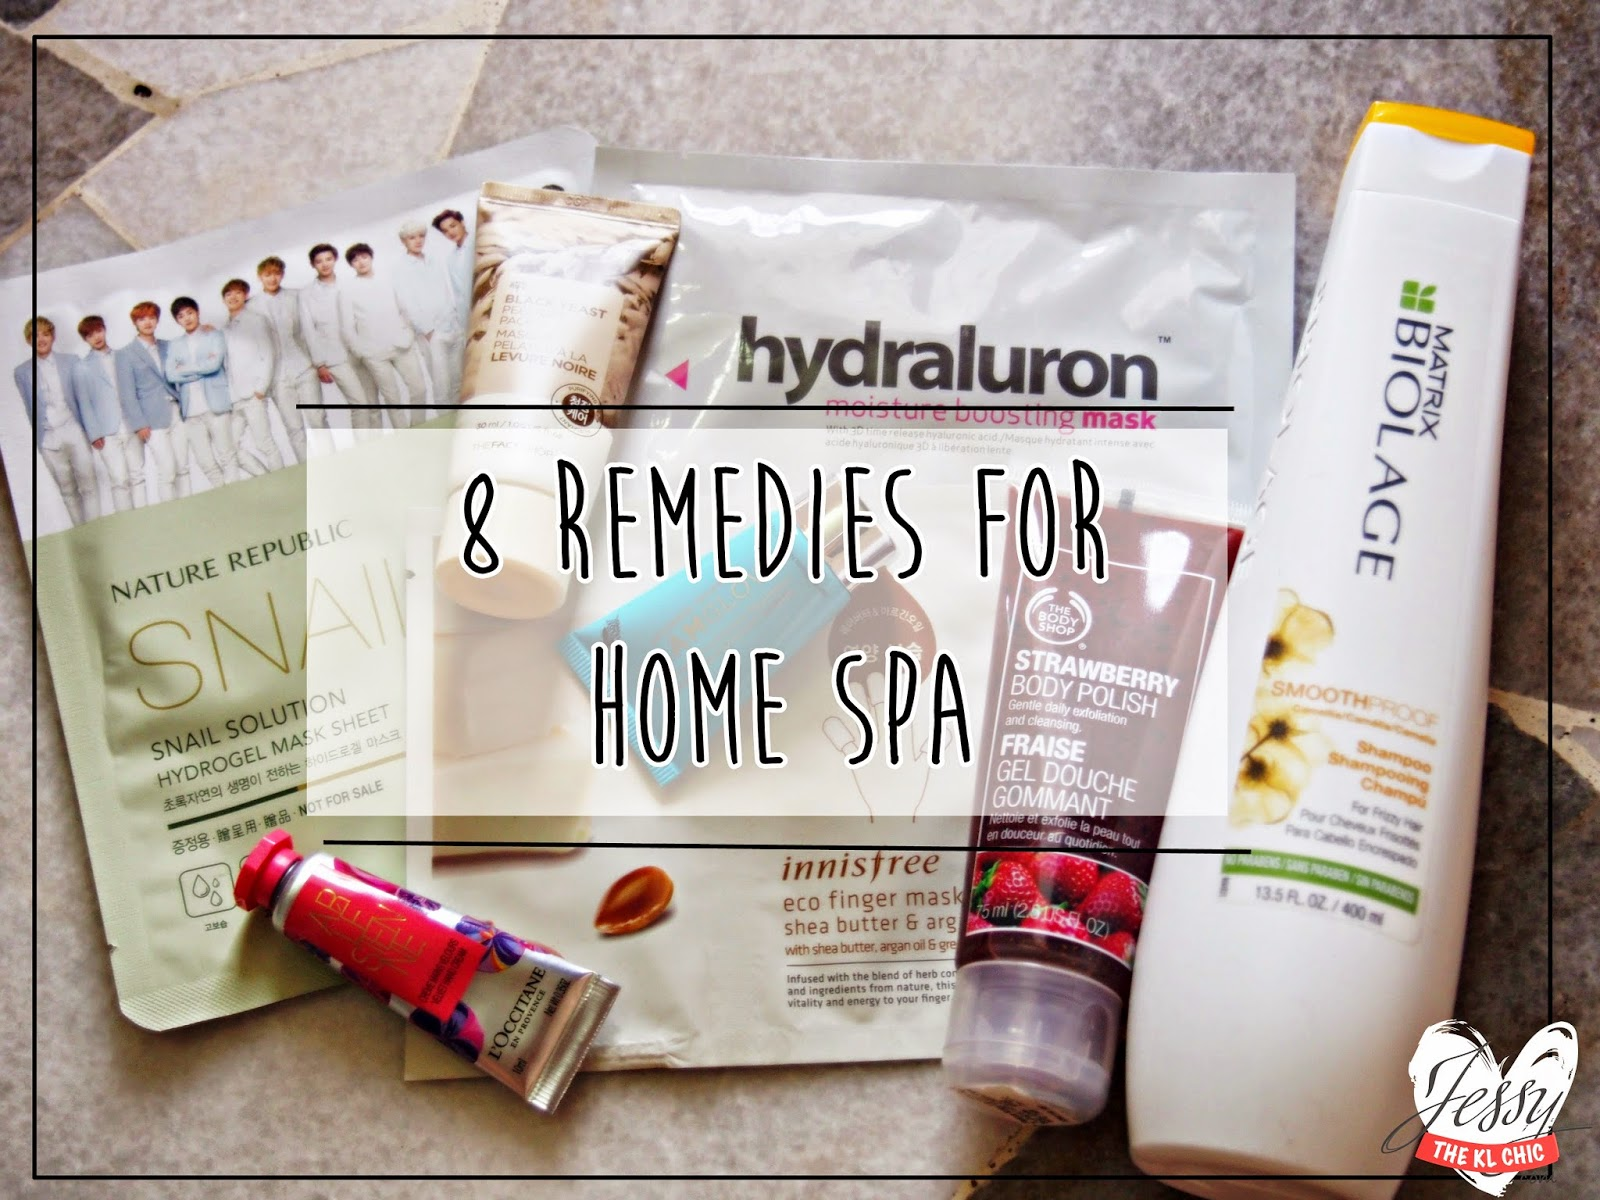 Beauty: 8 Remedies For Home Spa